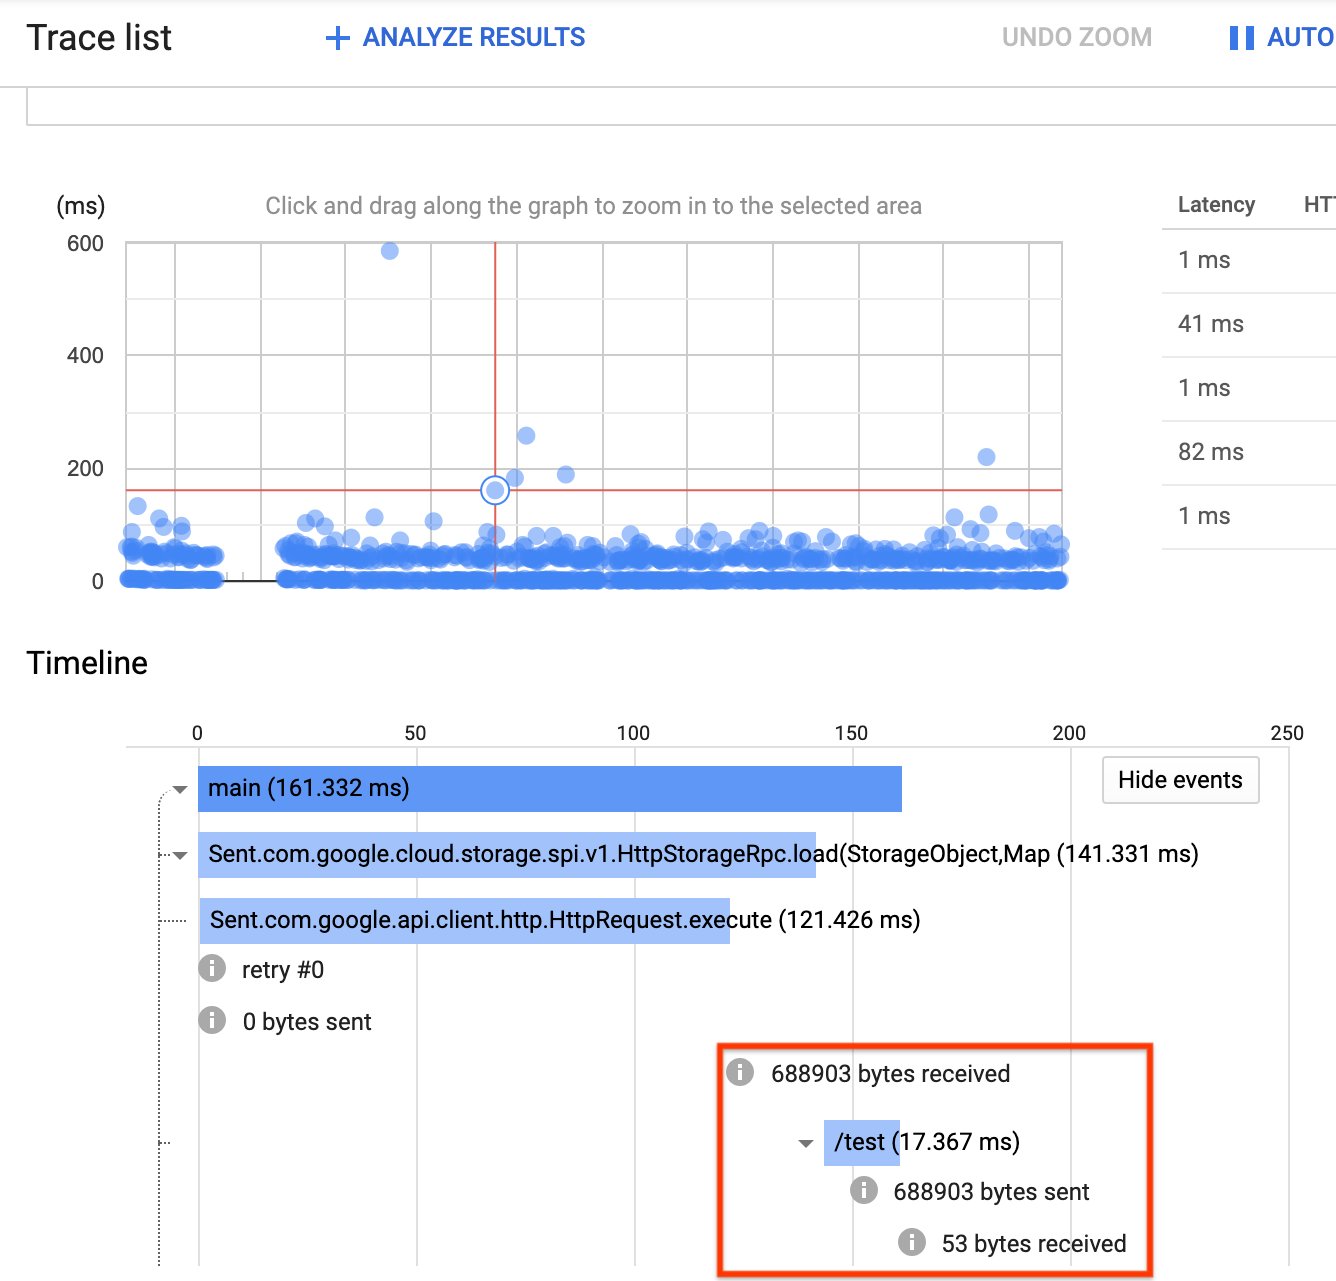 Trace list showing higher-latency requests.